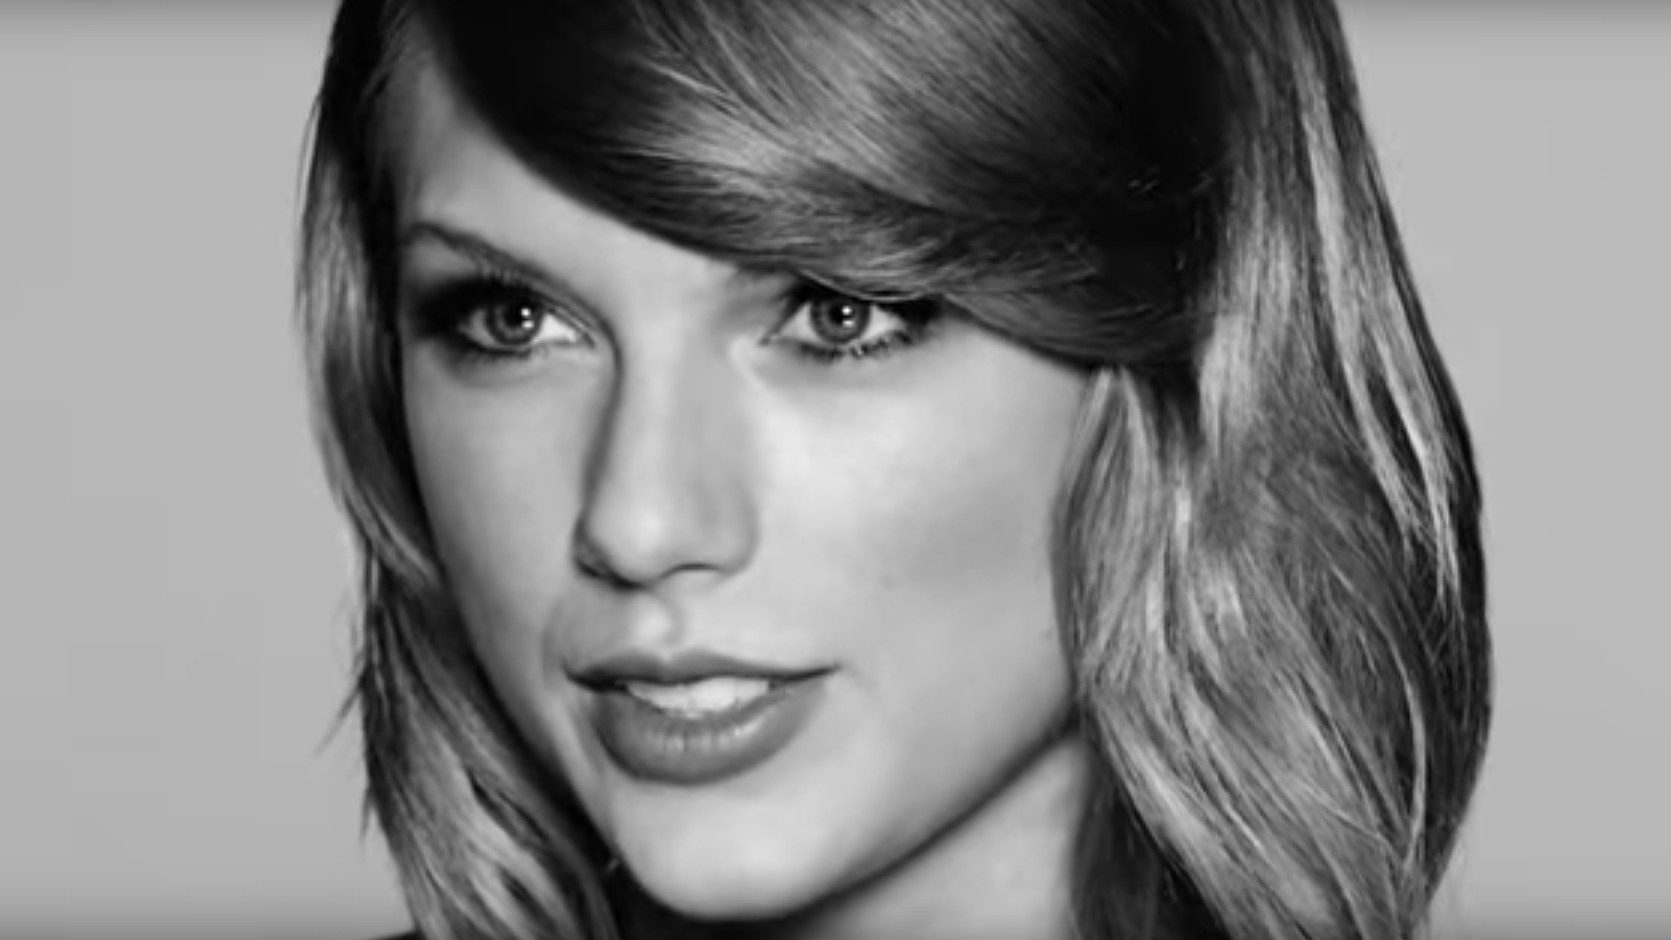 taylor swift essay topic I need to write a 5 paragraph essay about a famous singer and i have chosen taylor swift how ever im confused about how to start it if it needs to be 5.